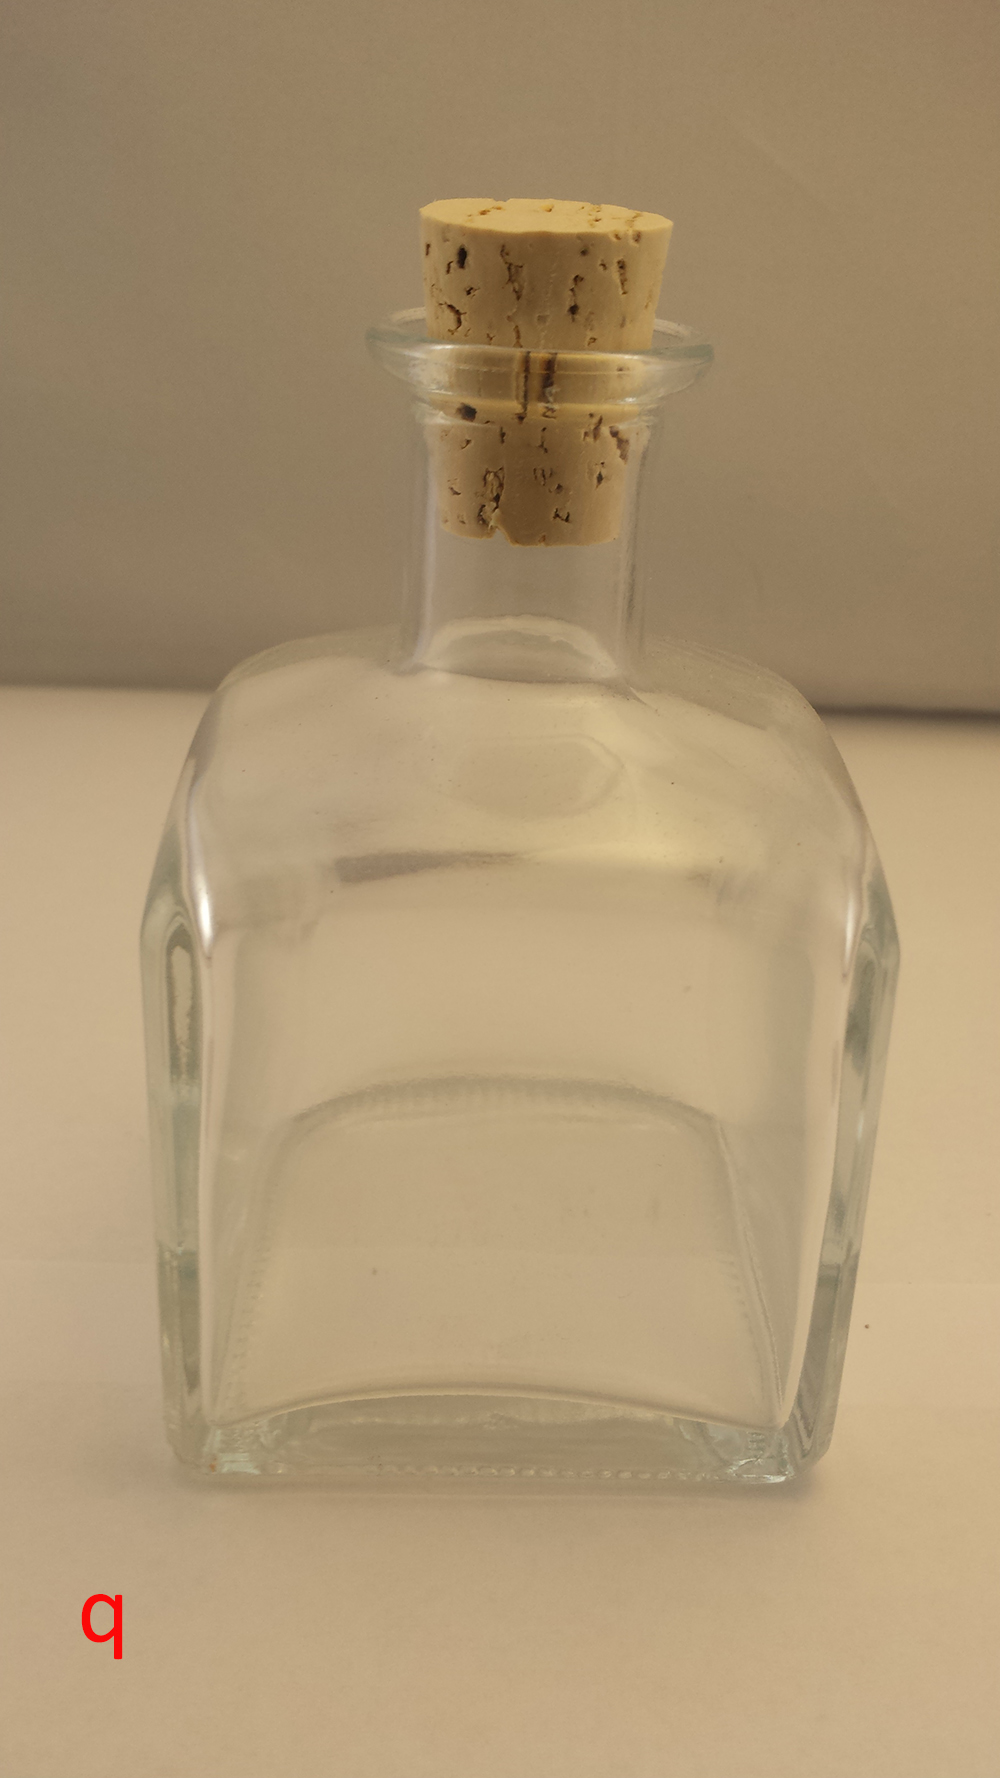 cork bottle9.jpg